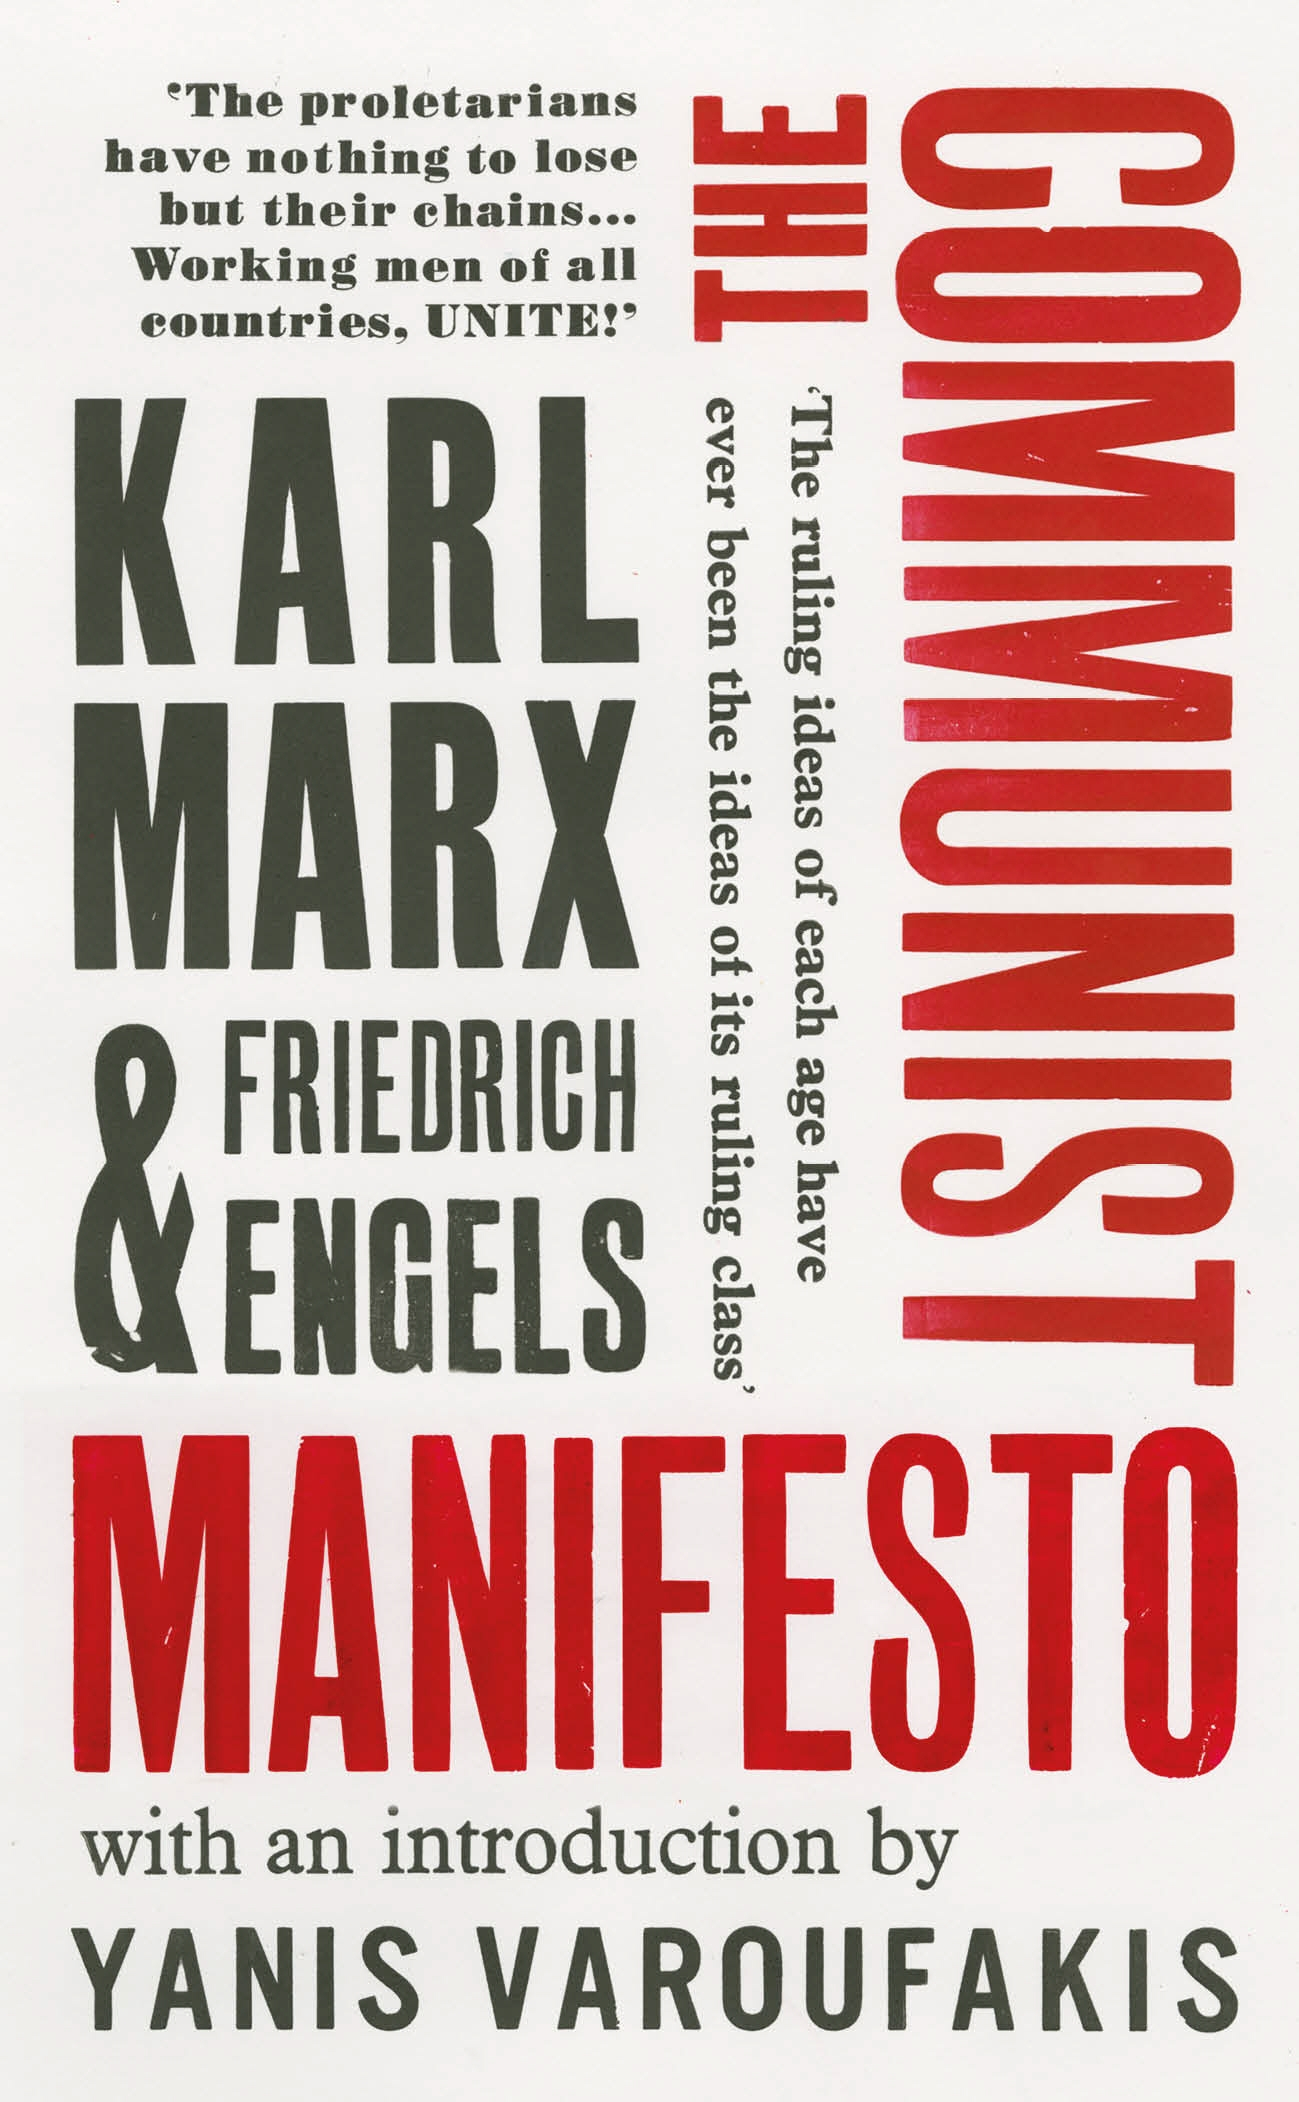 an analysis of the communist manifesto by karl marx The communist manifesto is an attempt by karl marx and friedrich engels to explain communism, as well as its goals and the underlying motivation and theories of the movement they argue that relationships between social classes rely on the means and methods of industry and production.